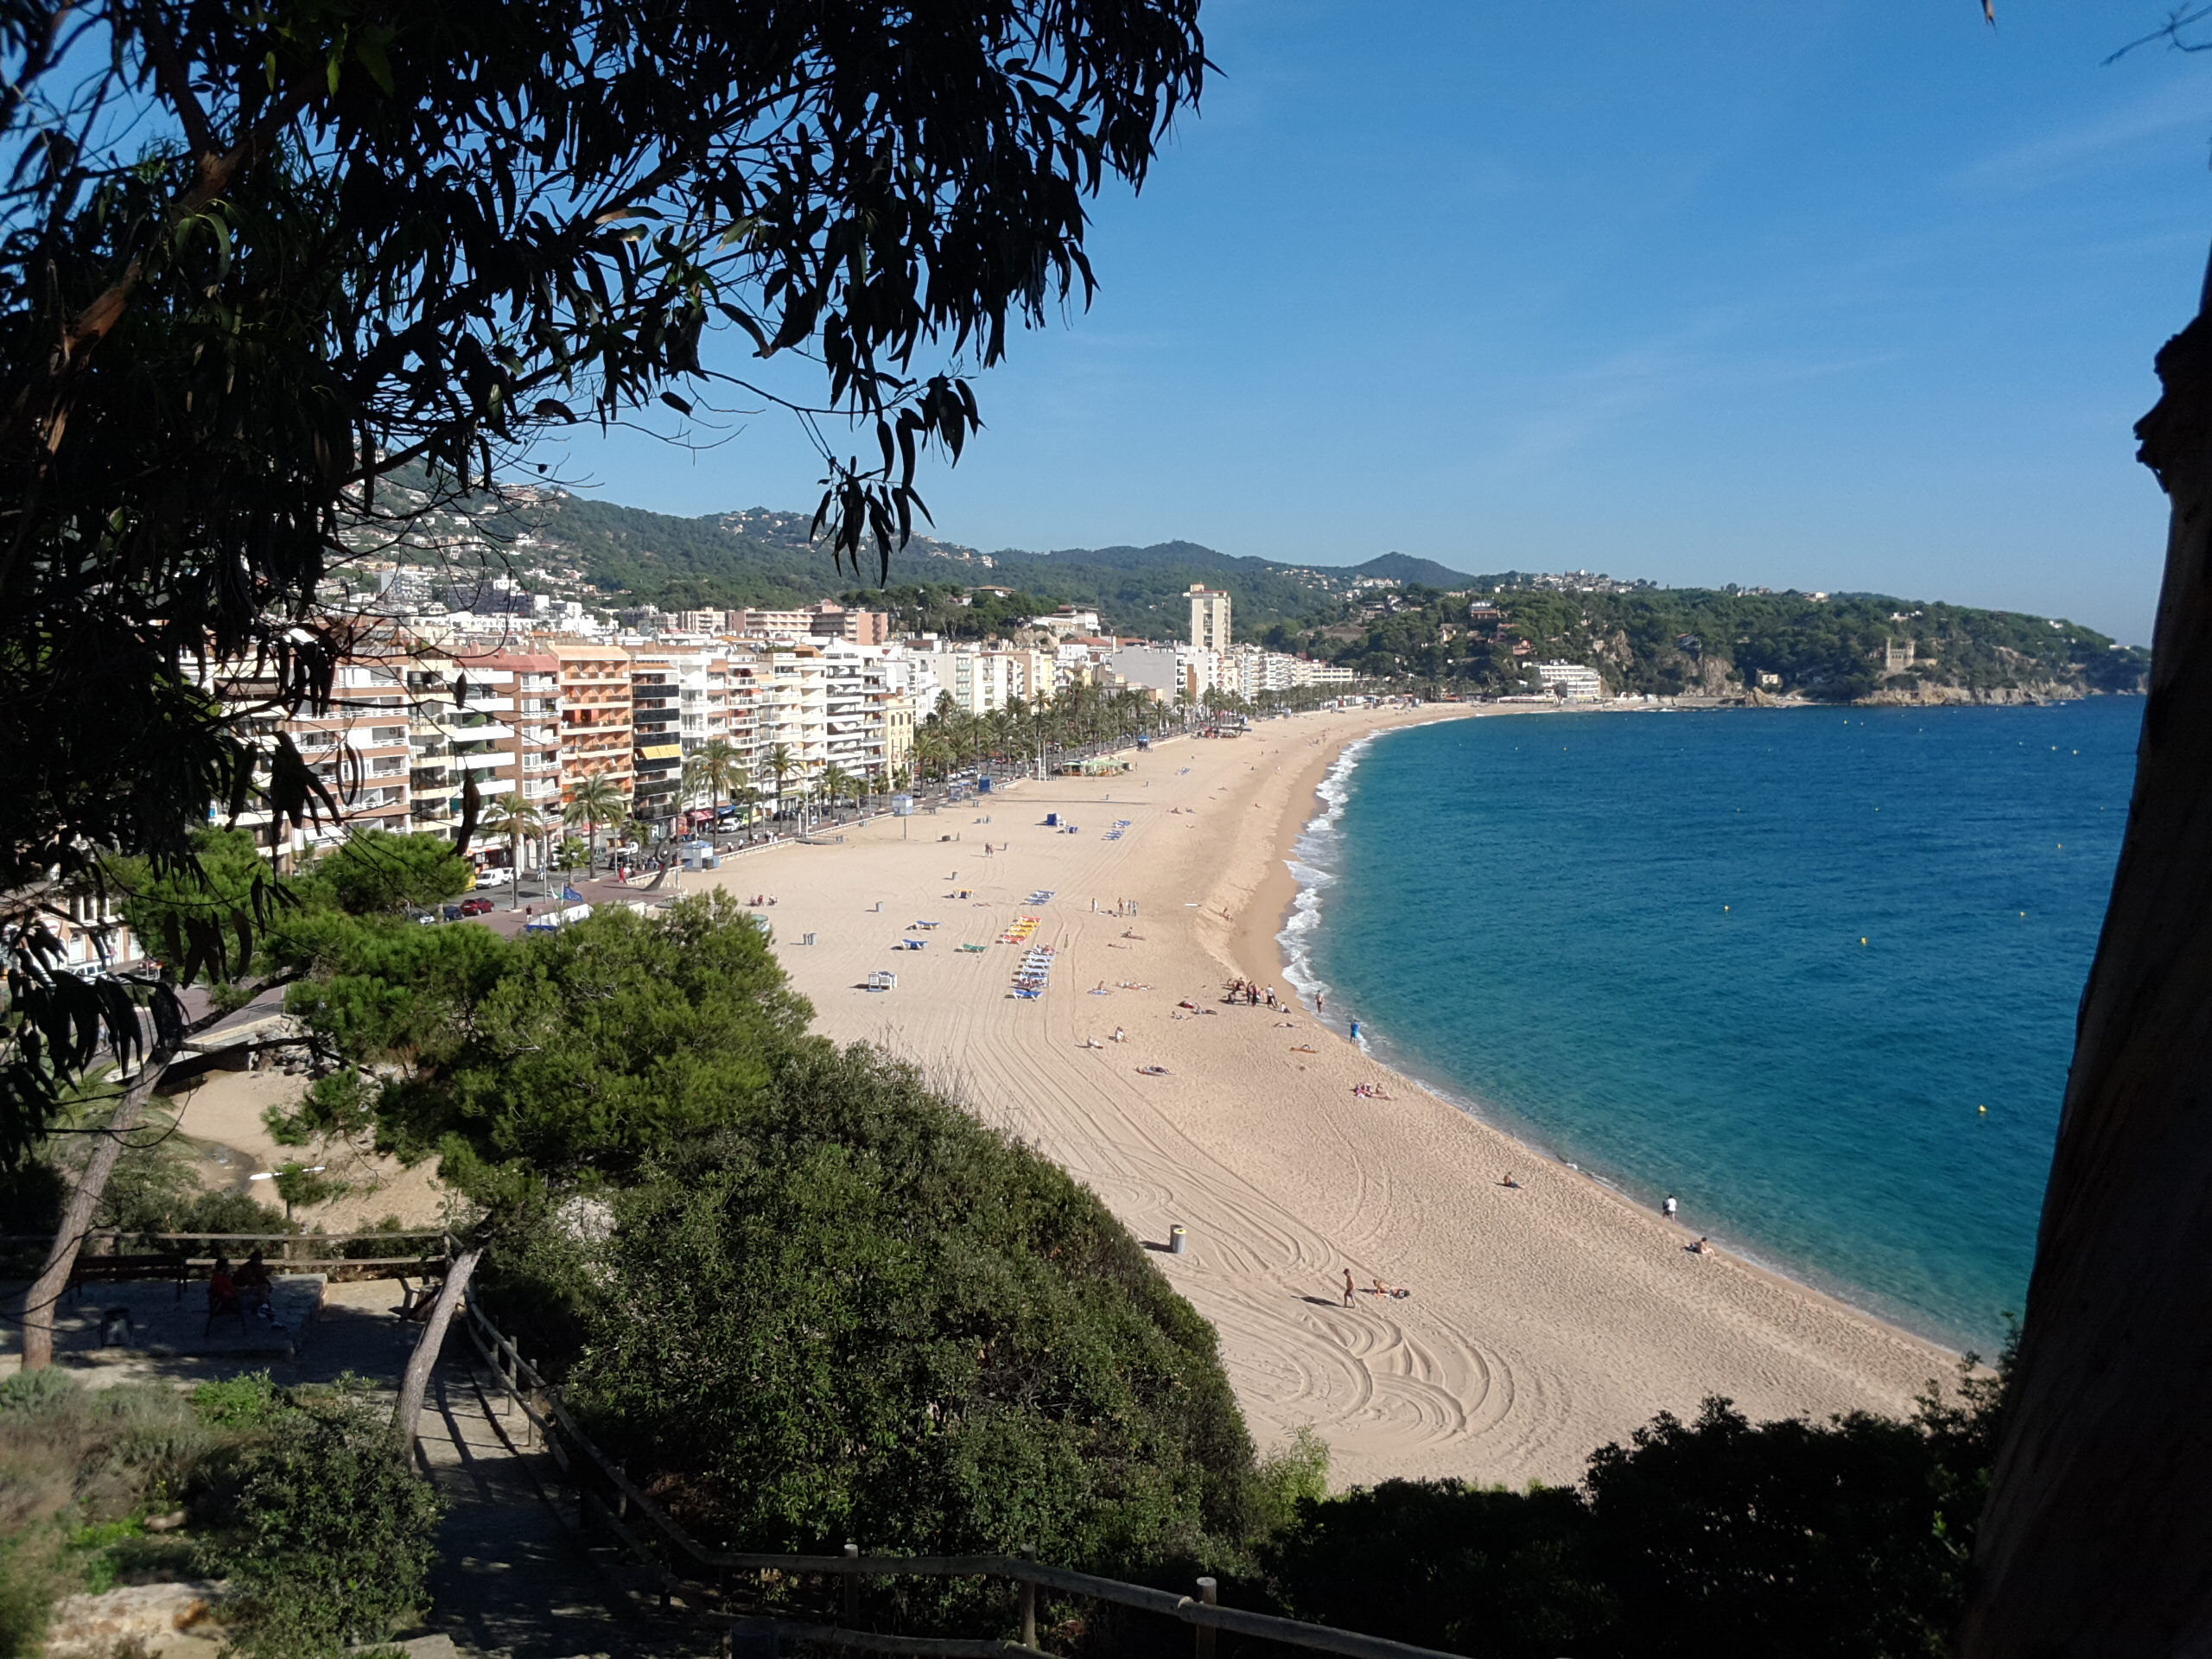 view to the beach of Lloret de Mar